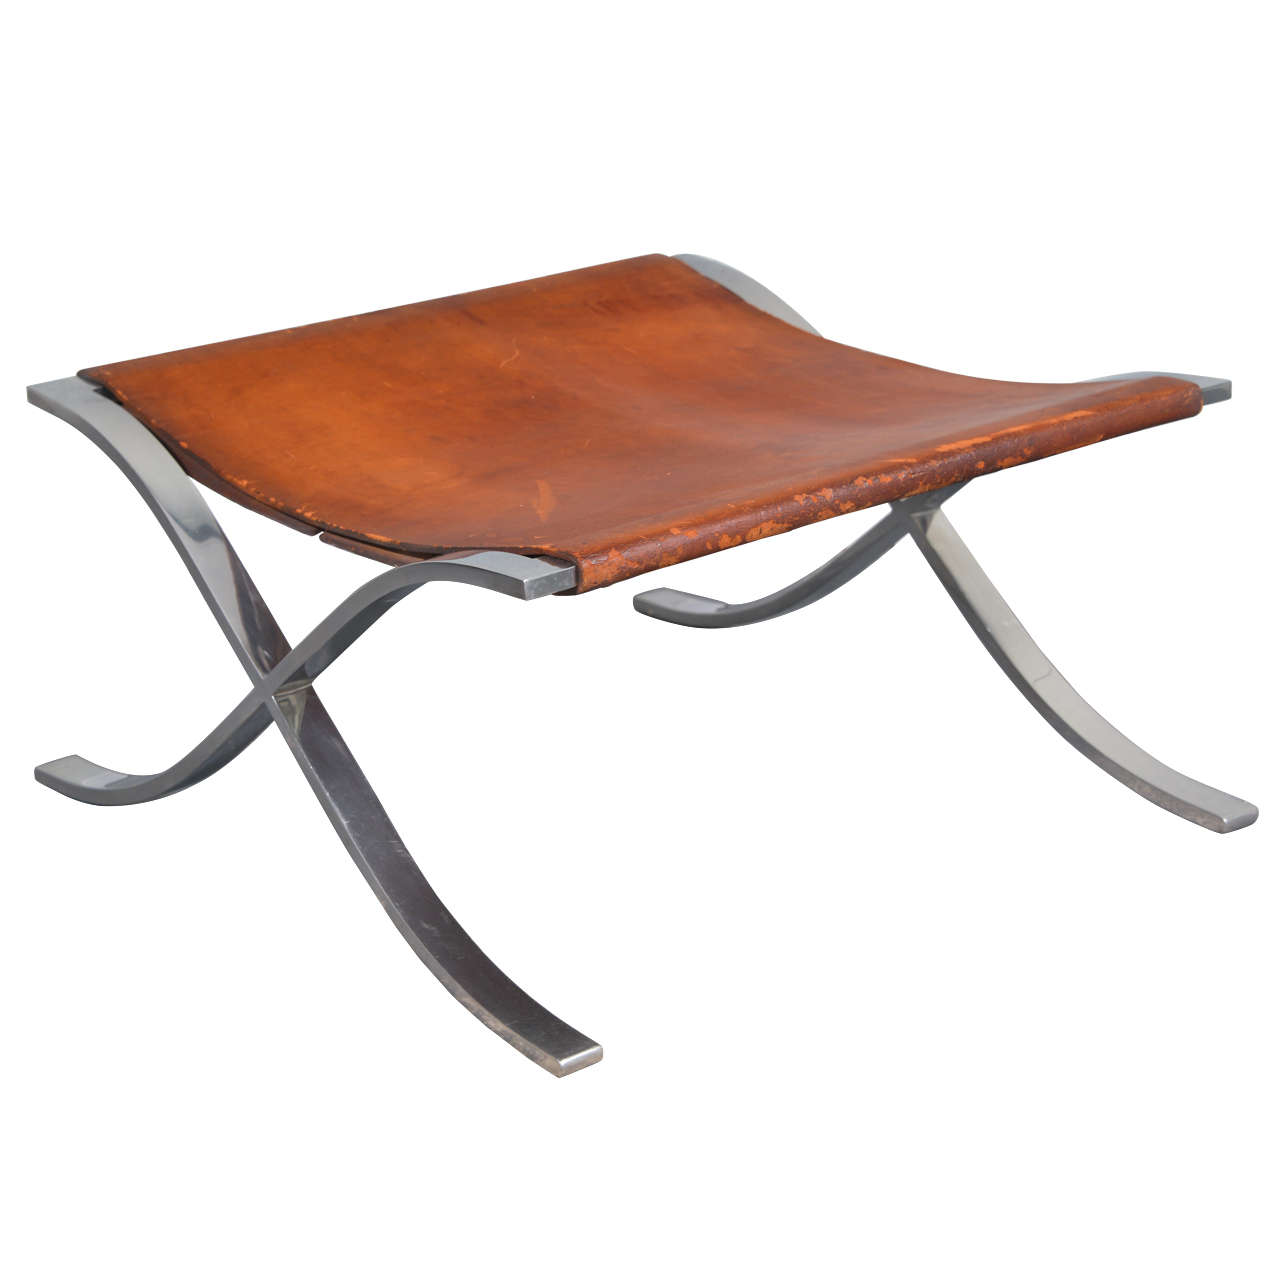 Ludwig Mies van der Rohe Barcelona Stool in Original Leather, 1965